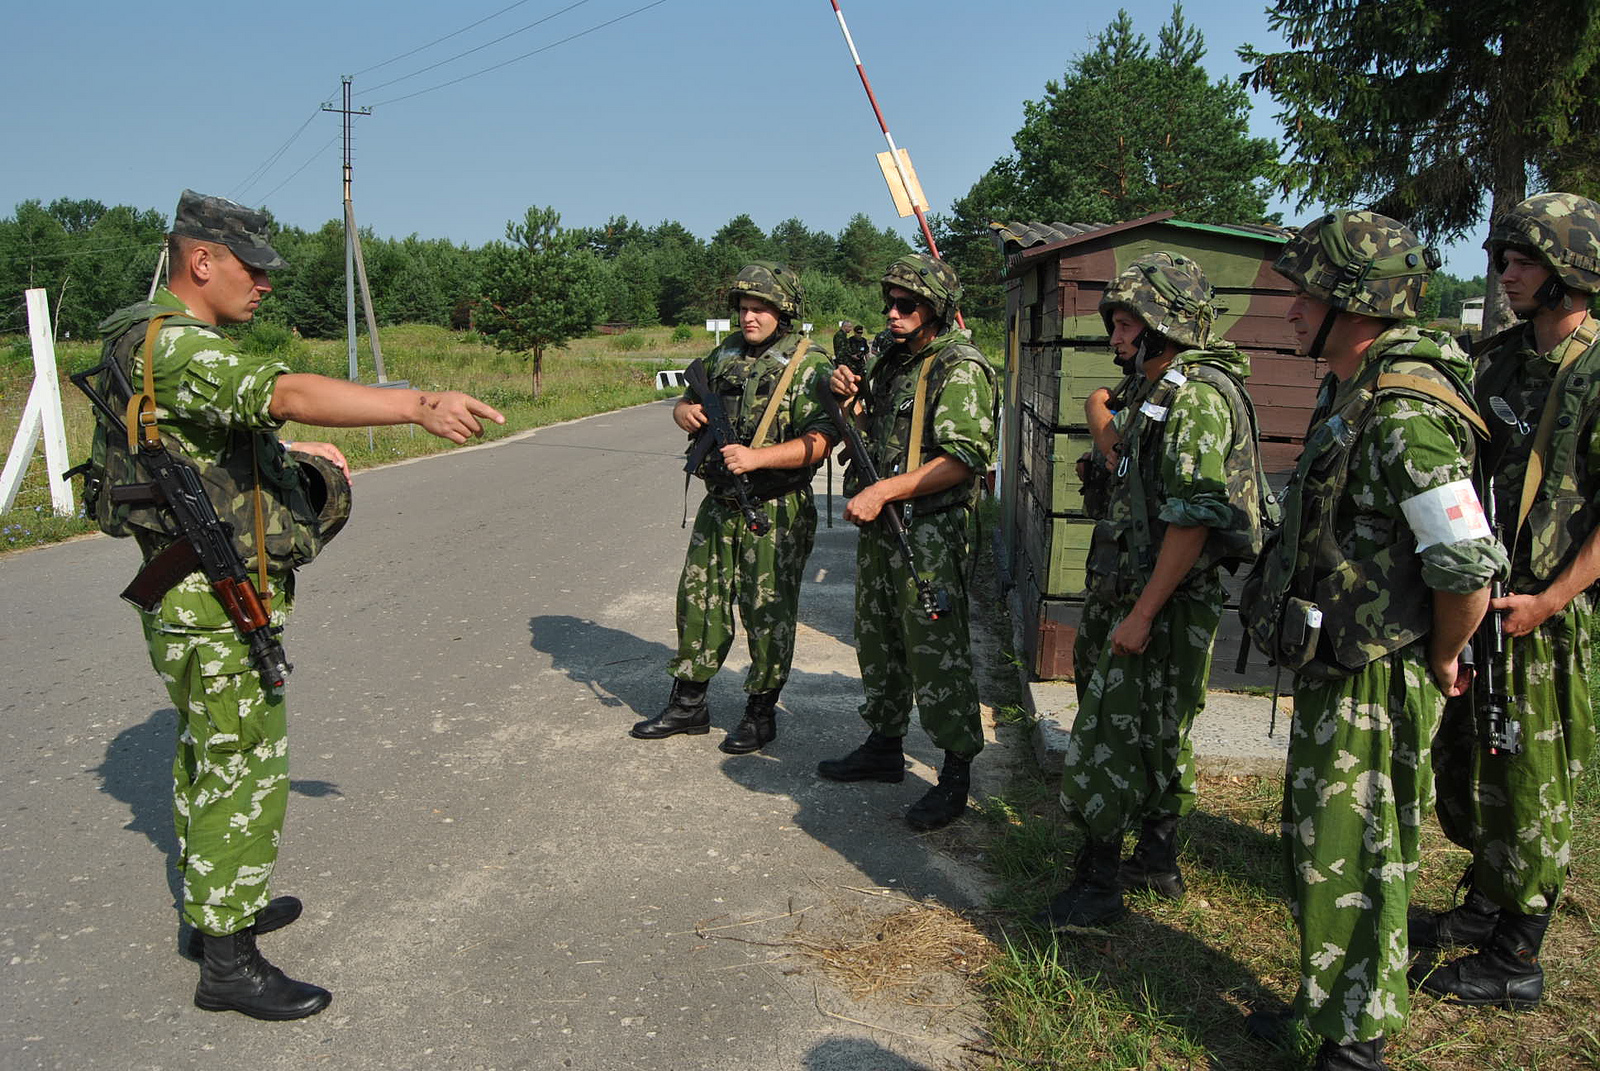 A Ukrainian Army officer, left, gives instructions to his soldiers before conducting training in Yavoriv, Ukraine, July 10, 2013.